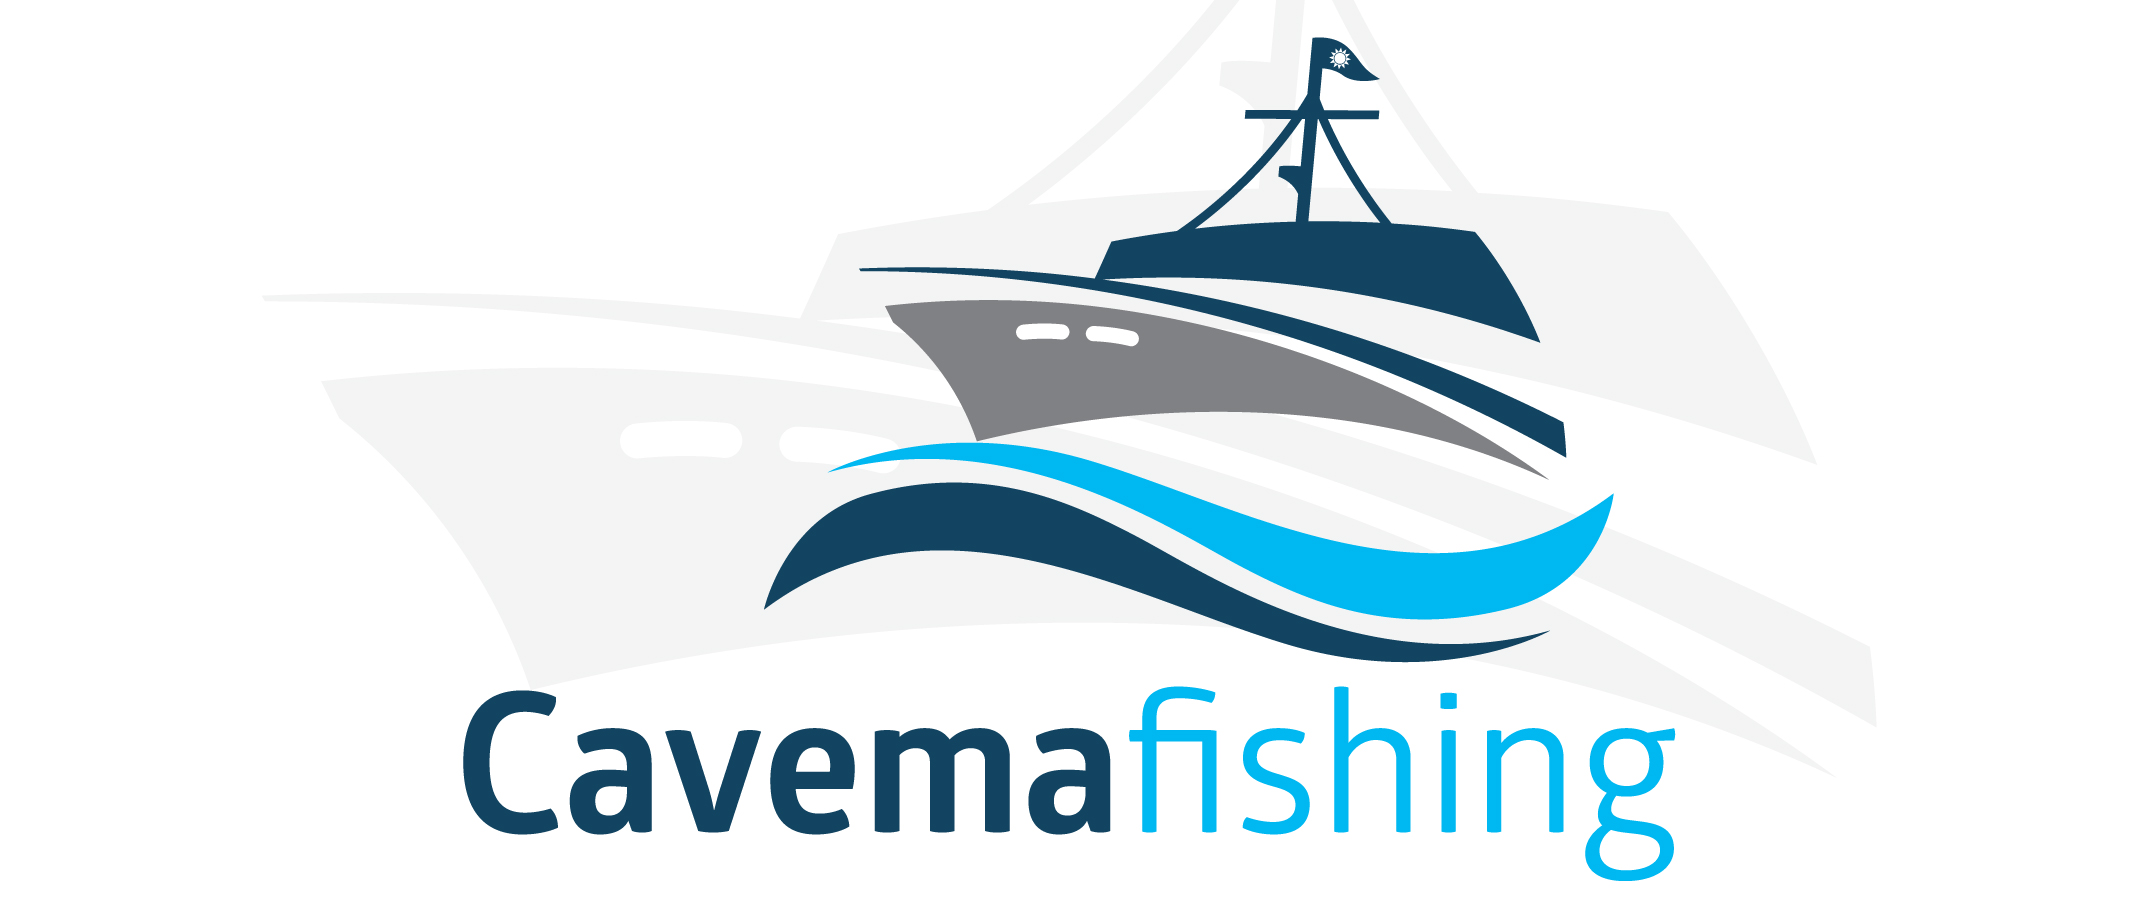 Cavema Fishing